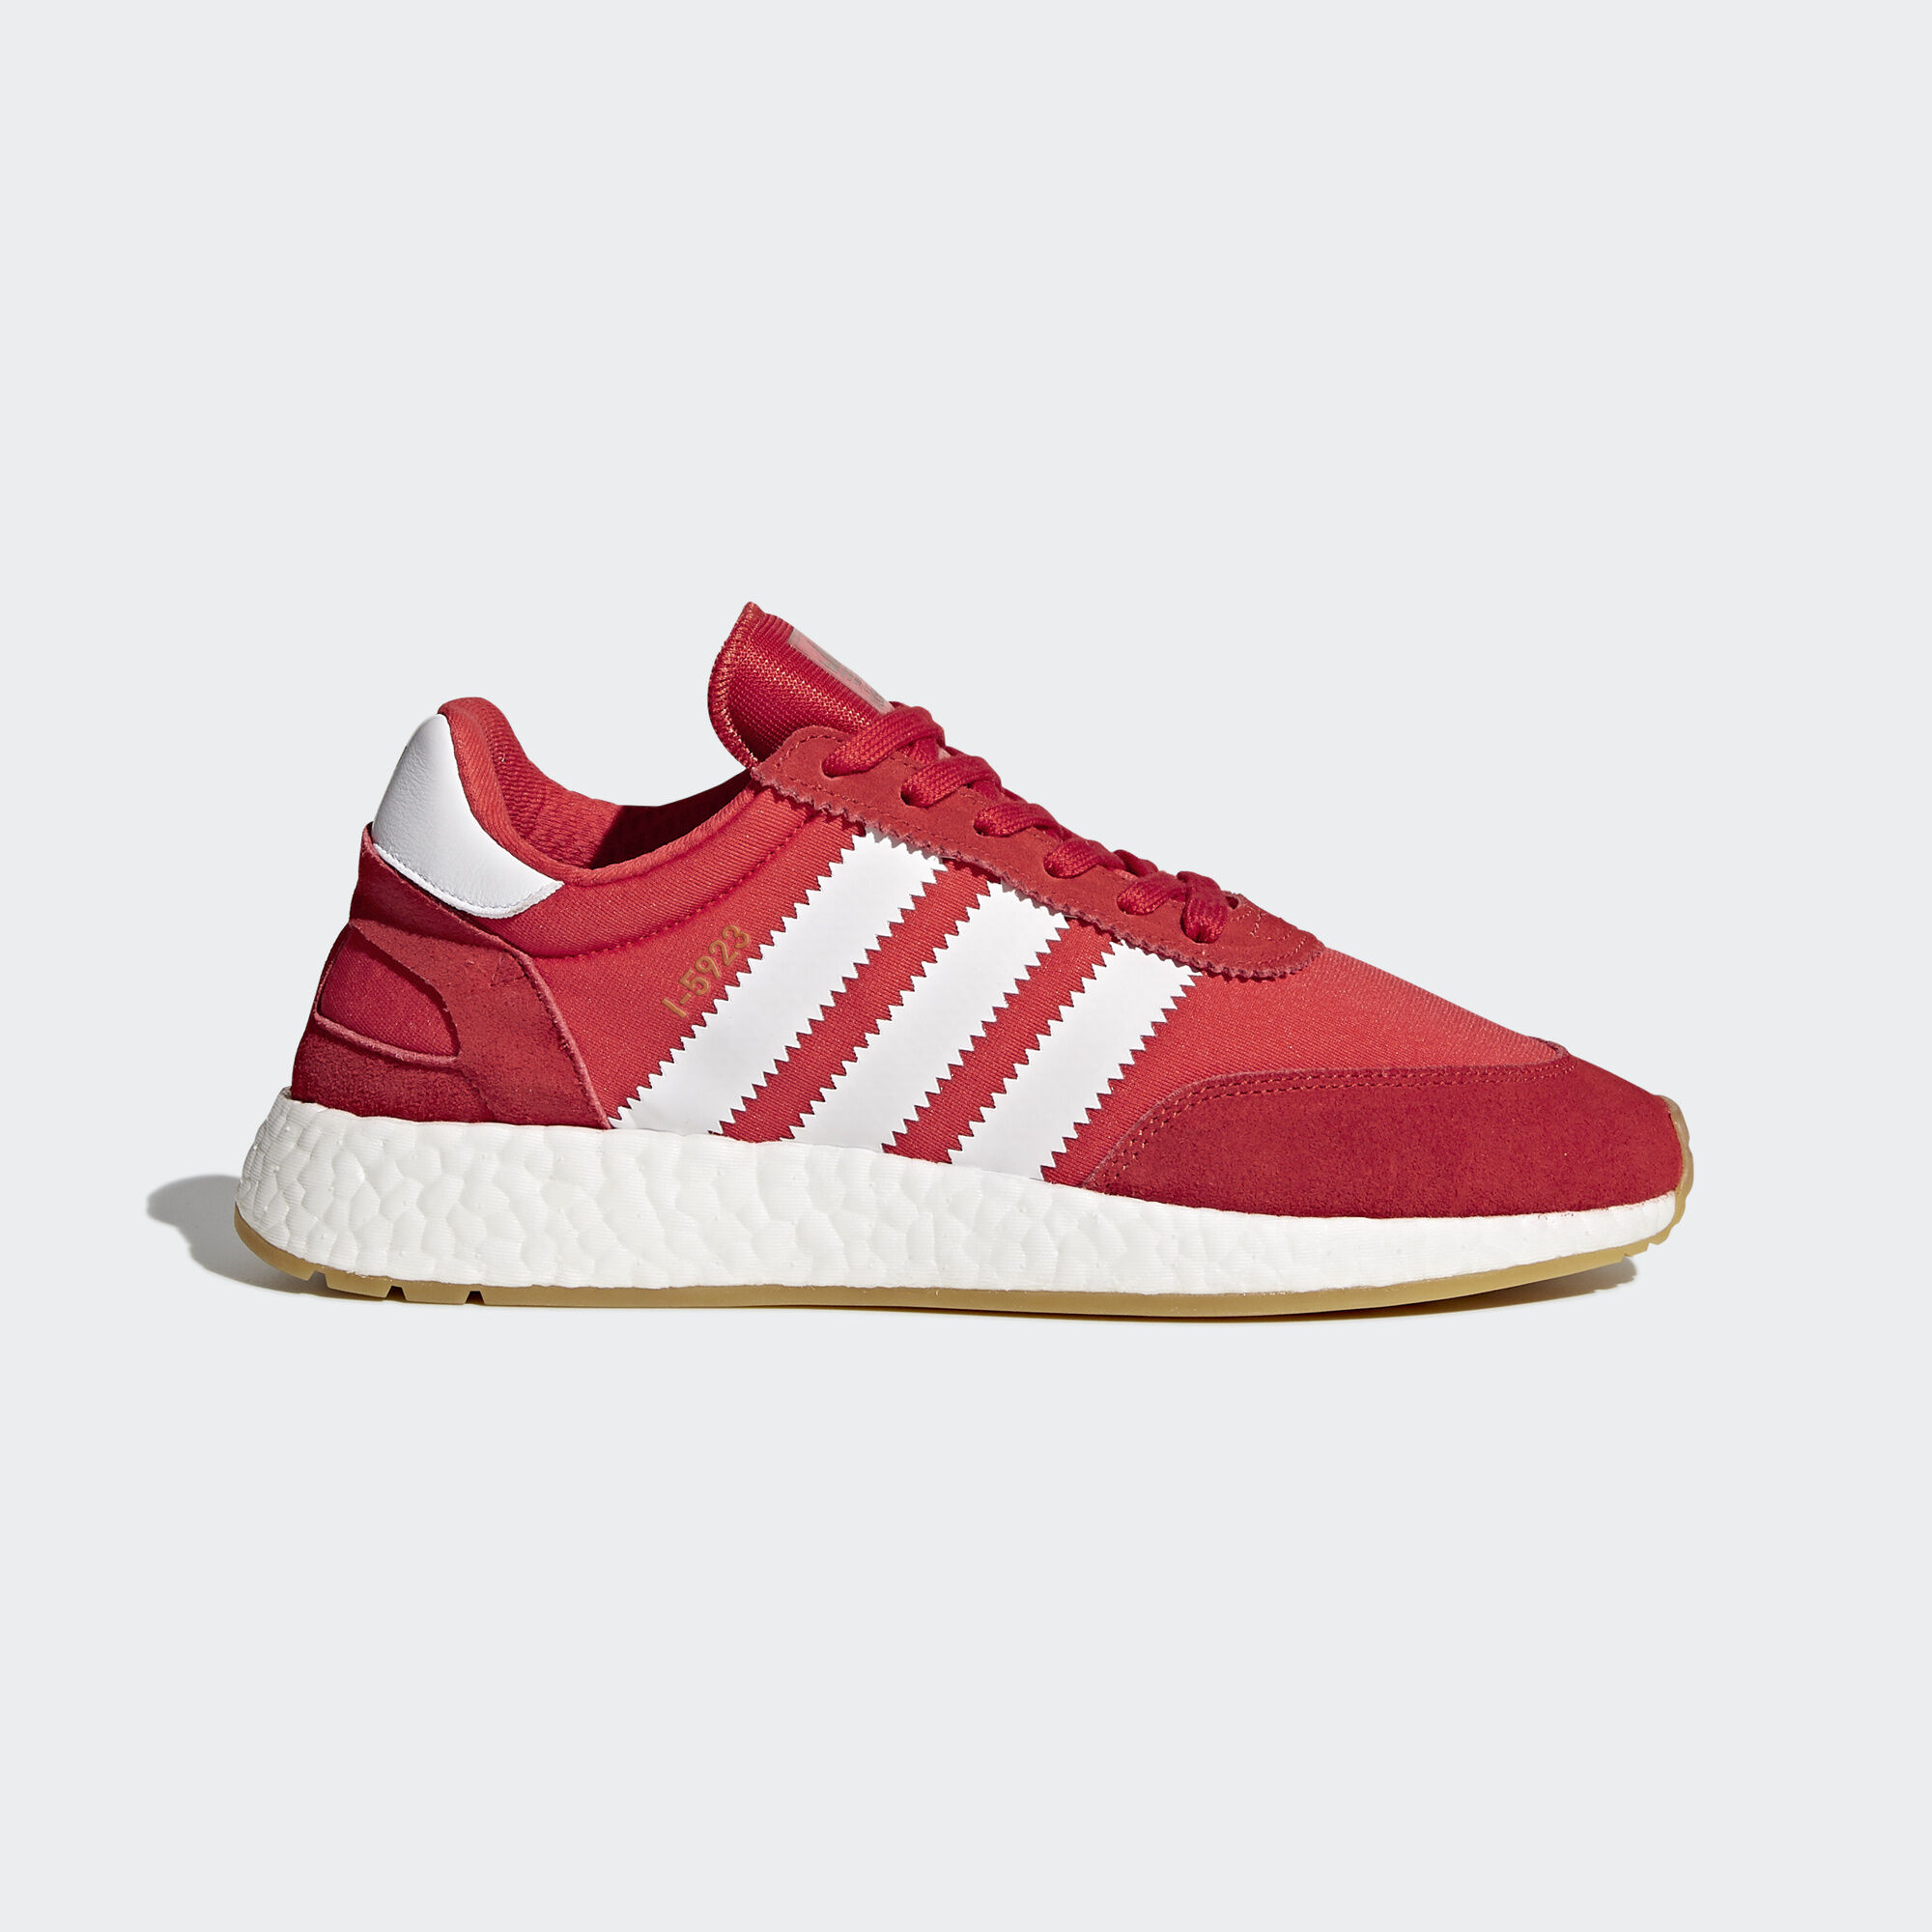 Adidas Shoes Red White